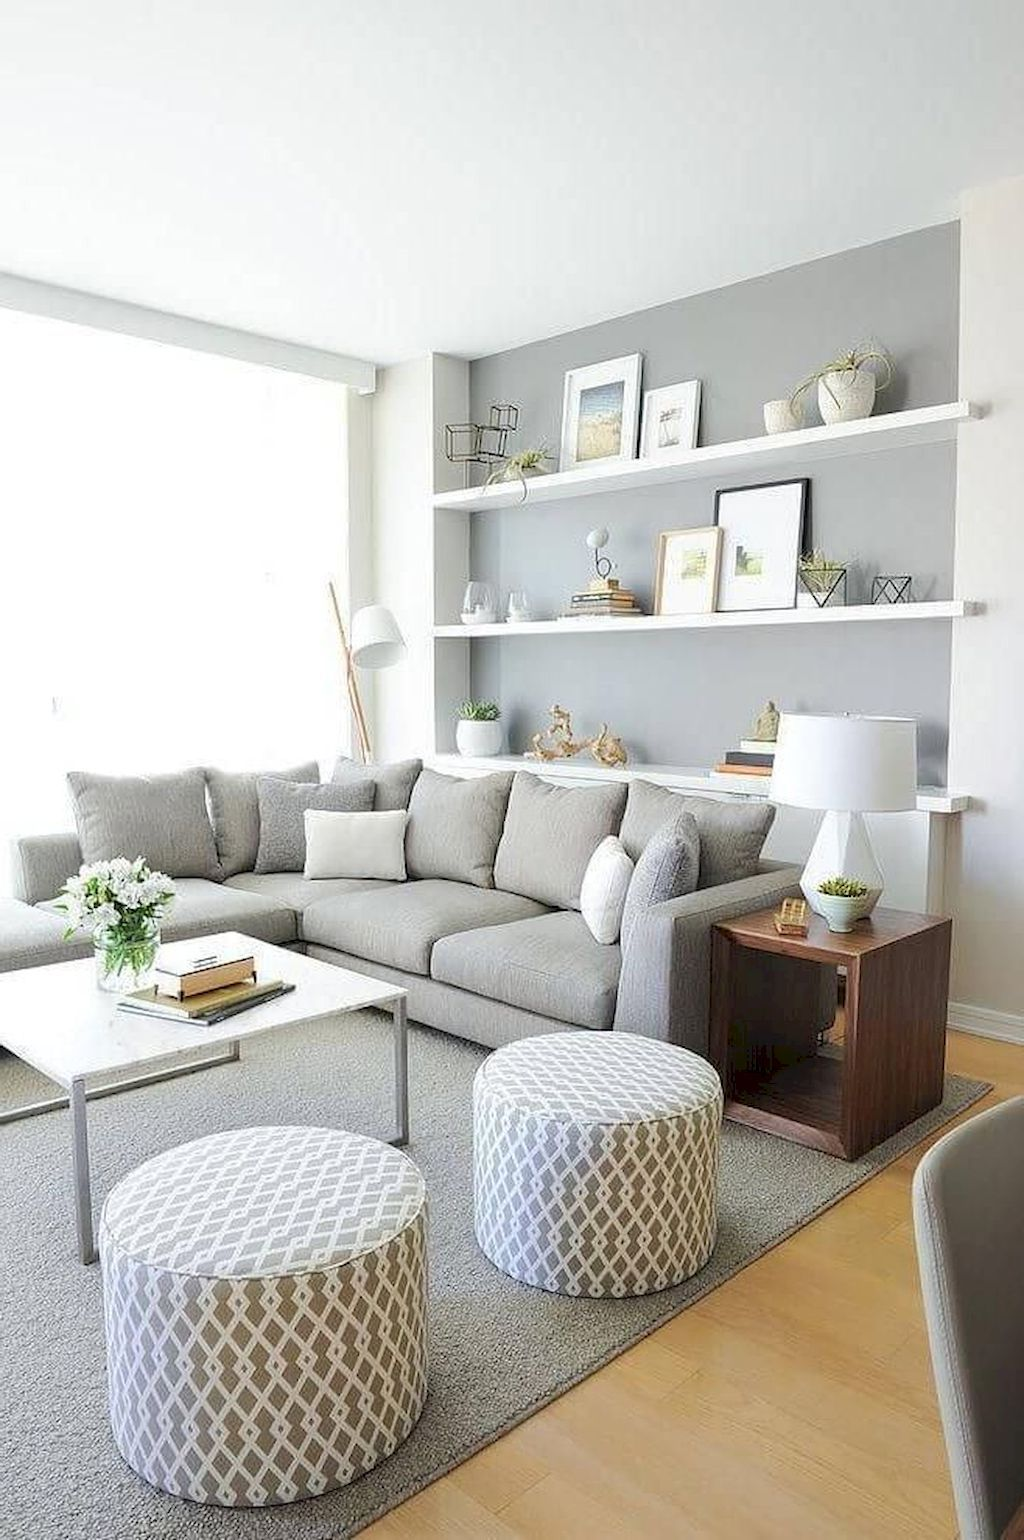 interior ideas to maximize tiny apartment spaces shairoom also home decor and rh pinterest